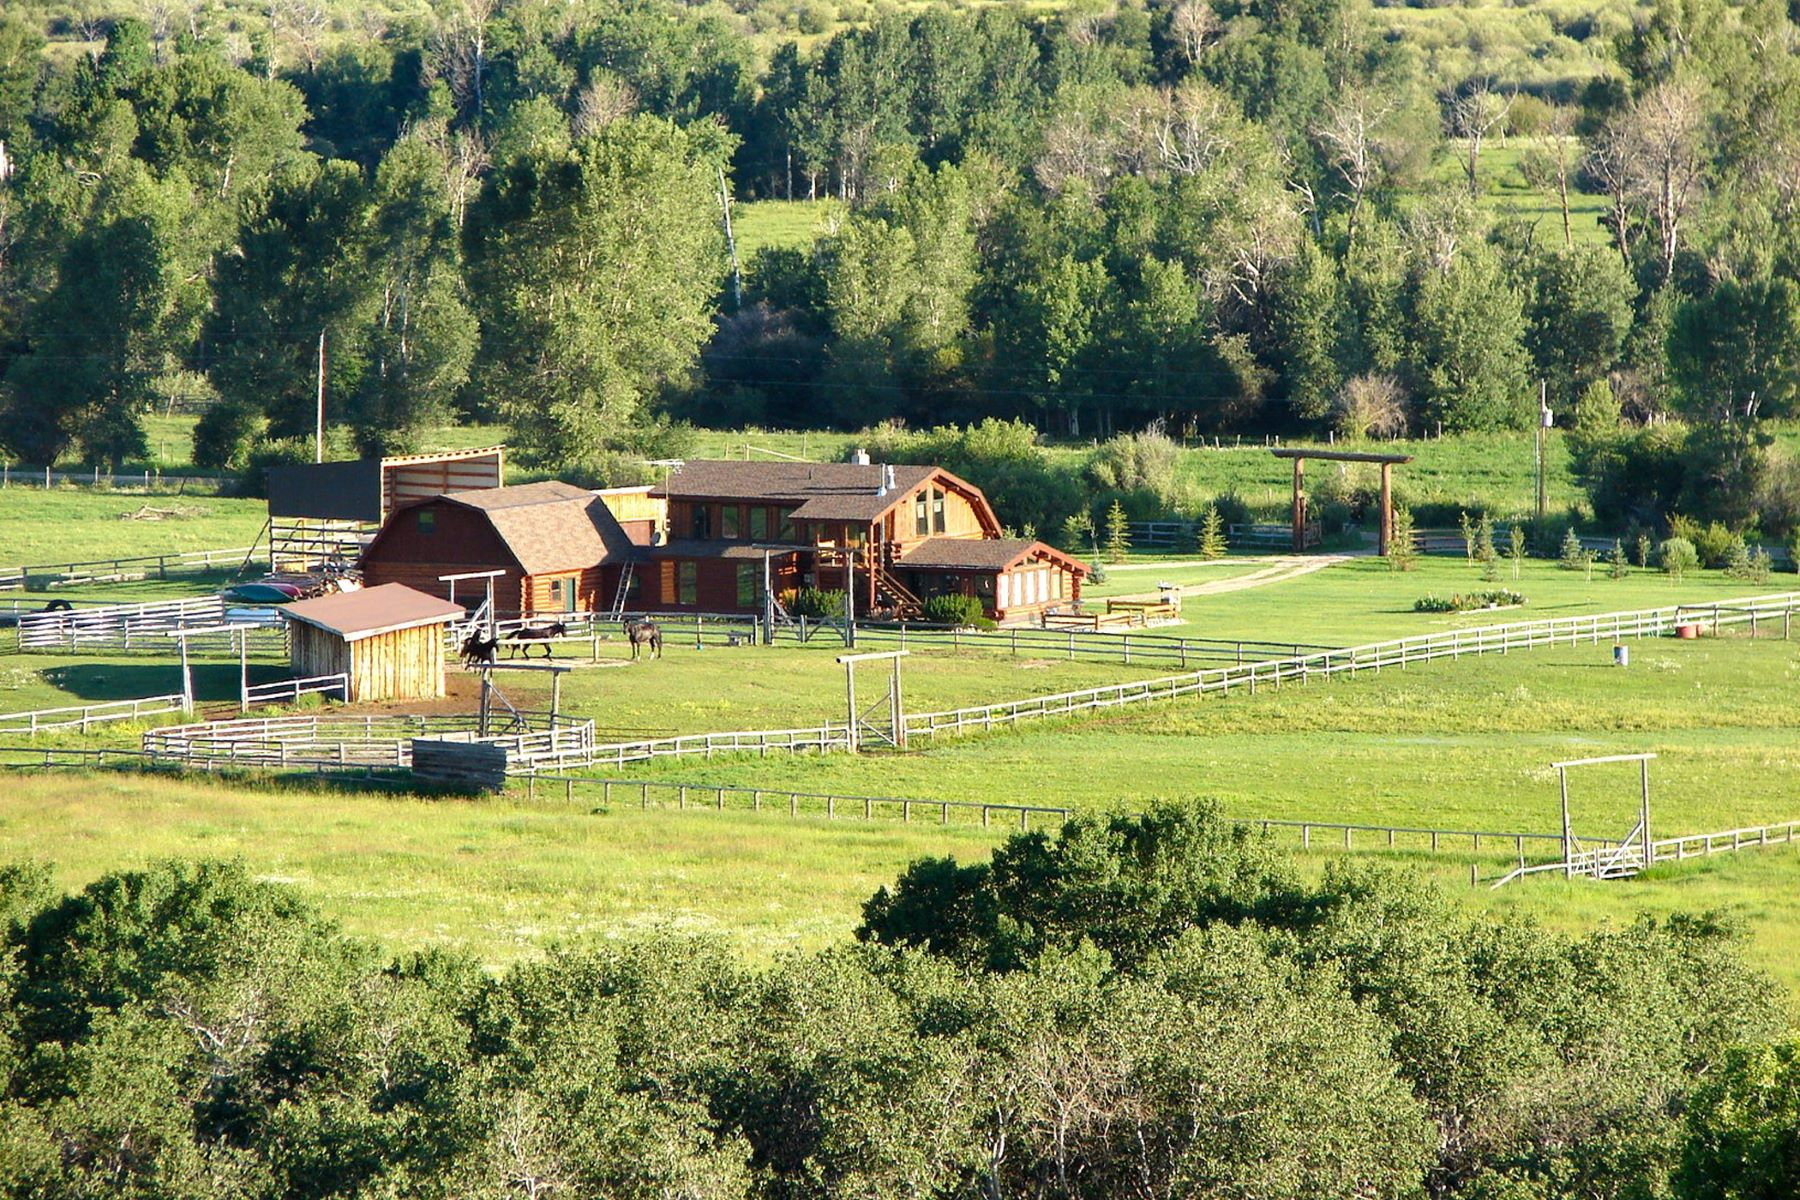 Maison unifamiliale pour l à vendre à Unique Horse Property on 30 Acres 1169 West 6500 North, Tetonia, Idaho, 83452 Jackson Hole, États-Unis